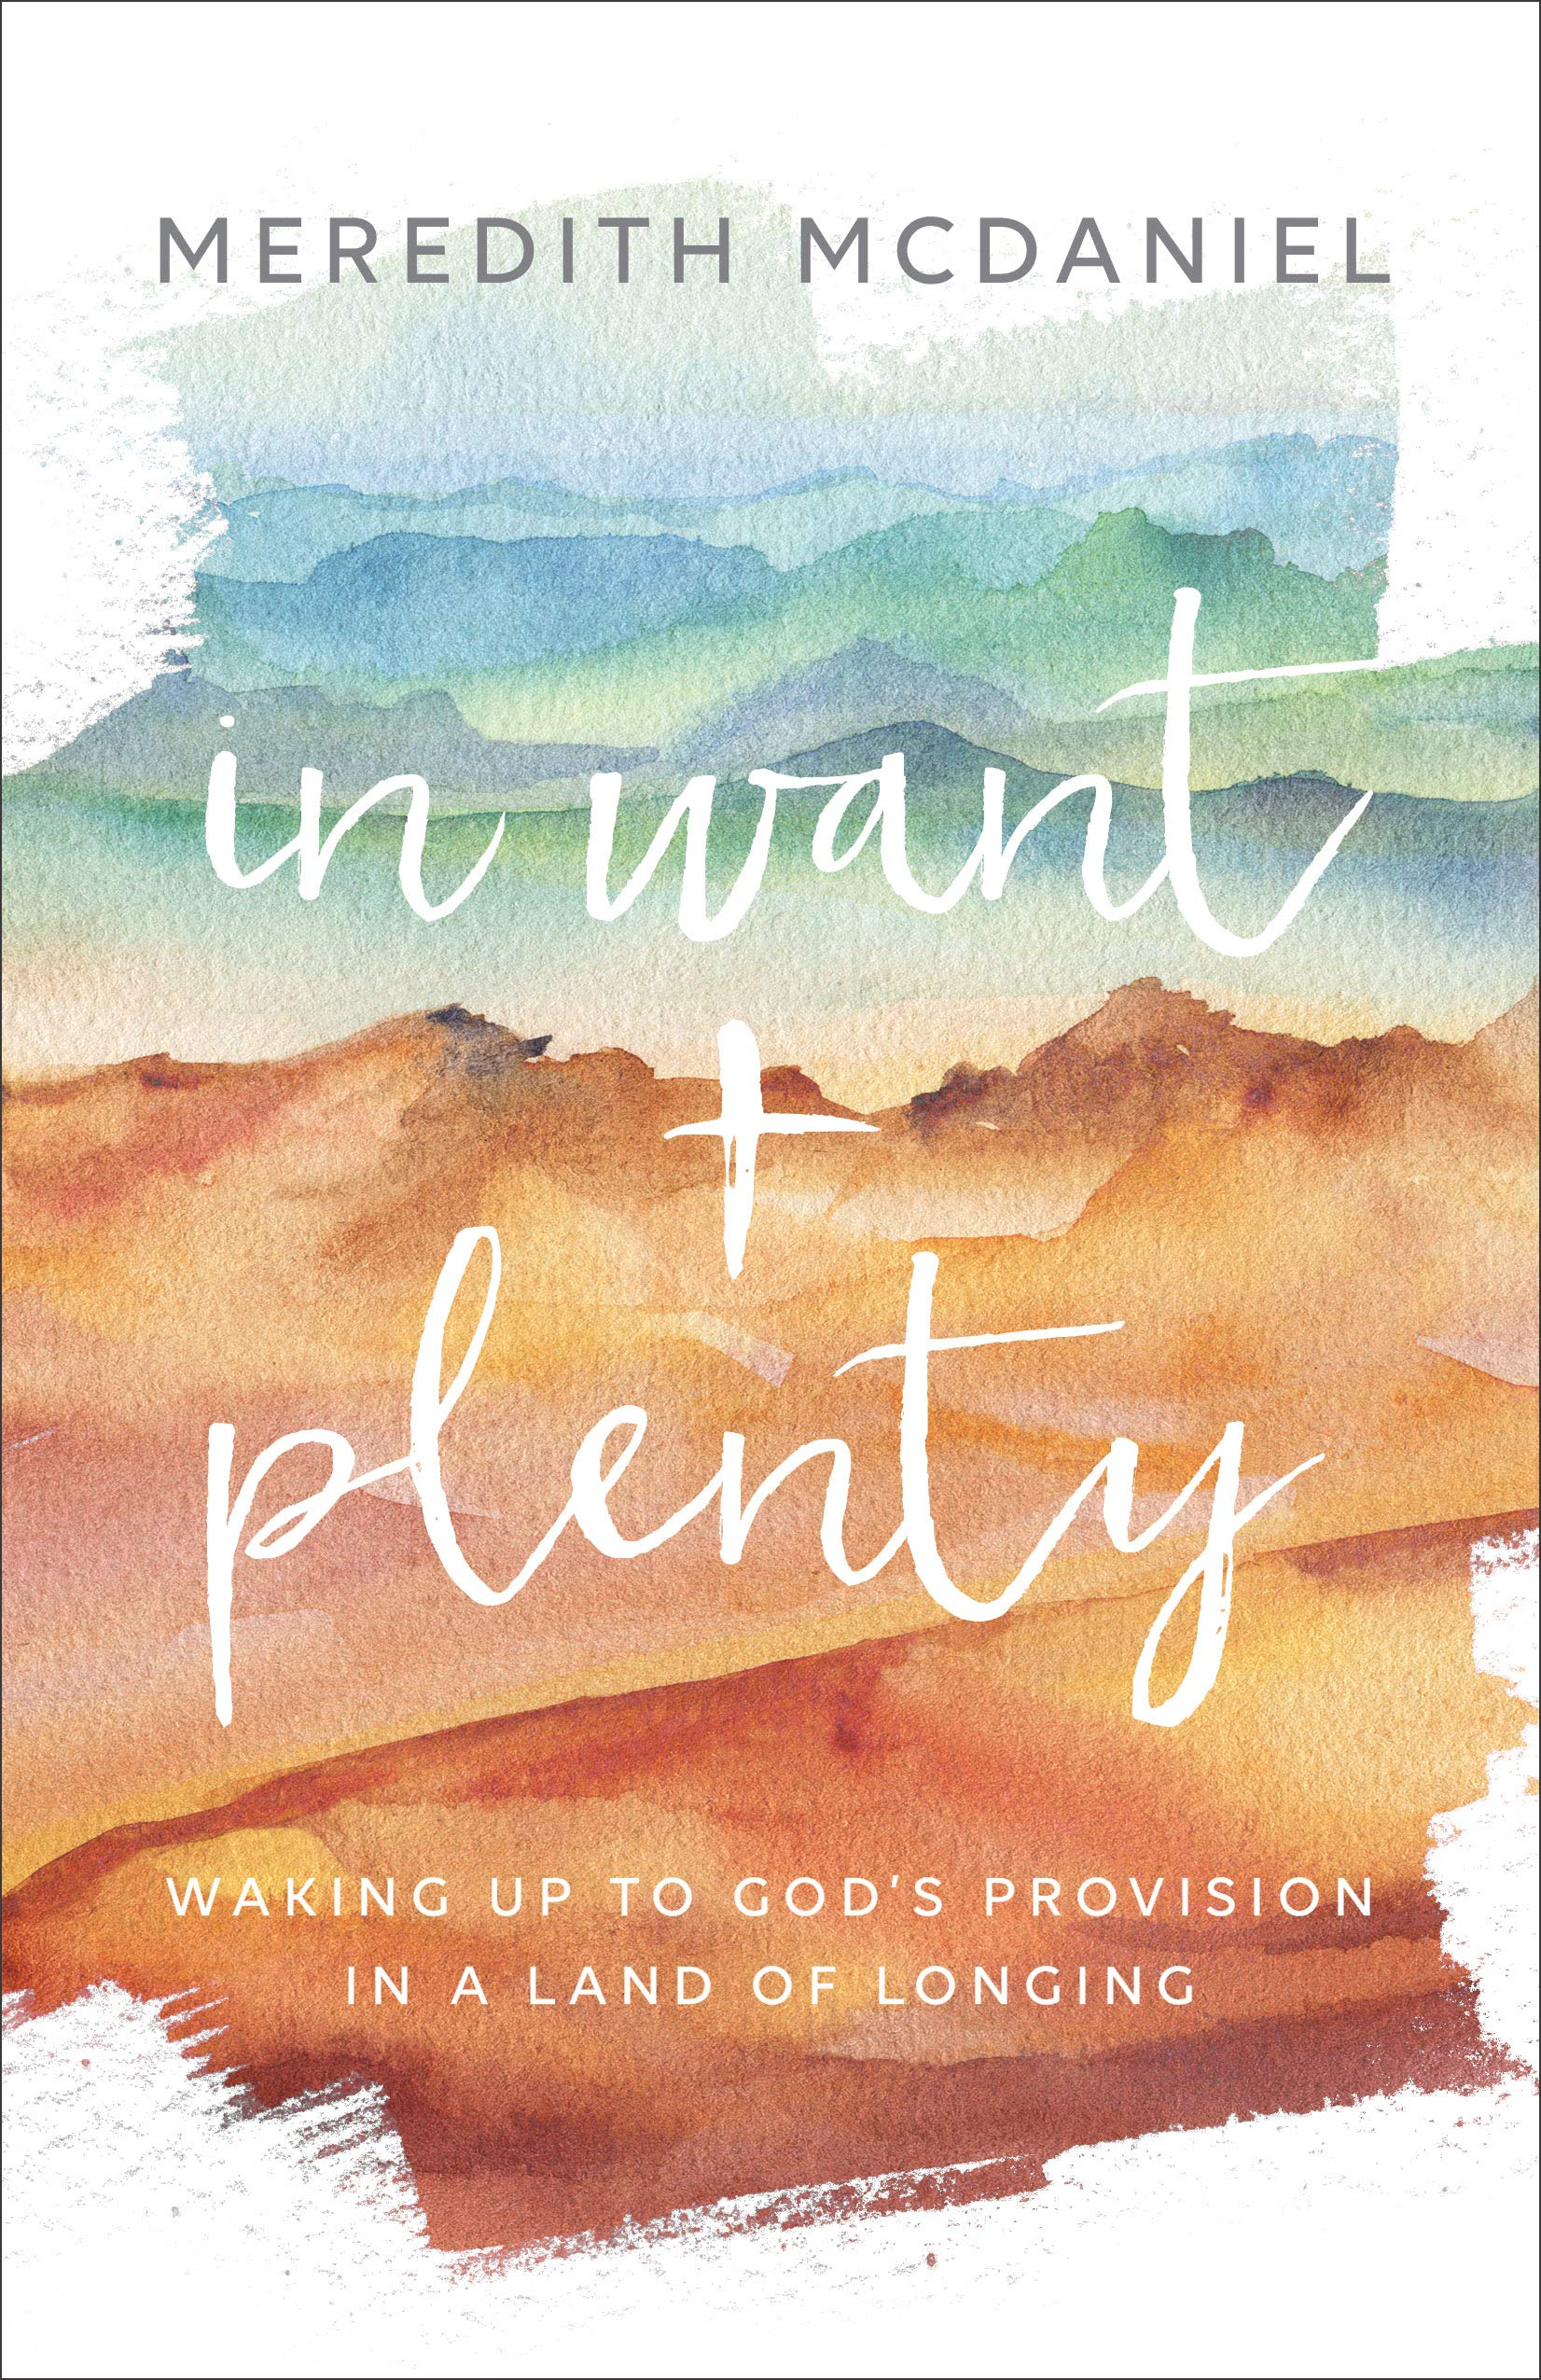 In Want + Plenty: Waking Up to God's Provision in a Land of